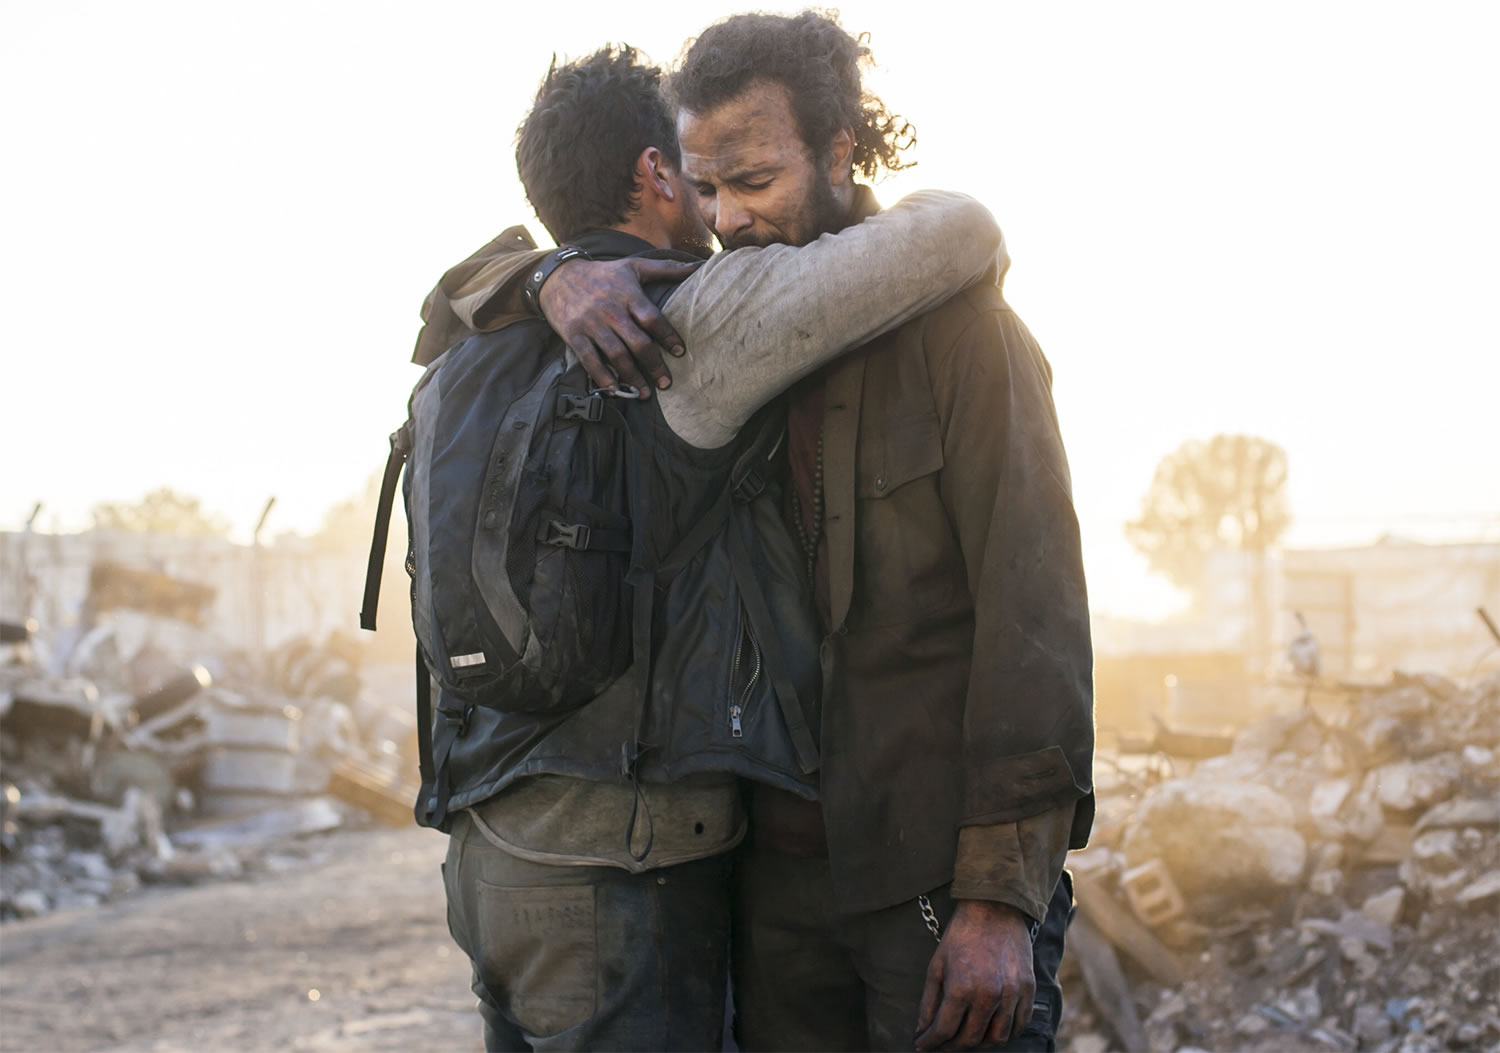 Post-Apocalyptic Movies - The Worthy, Ali F. Mostafa, characters embrace